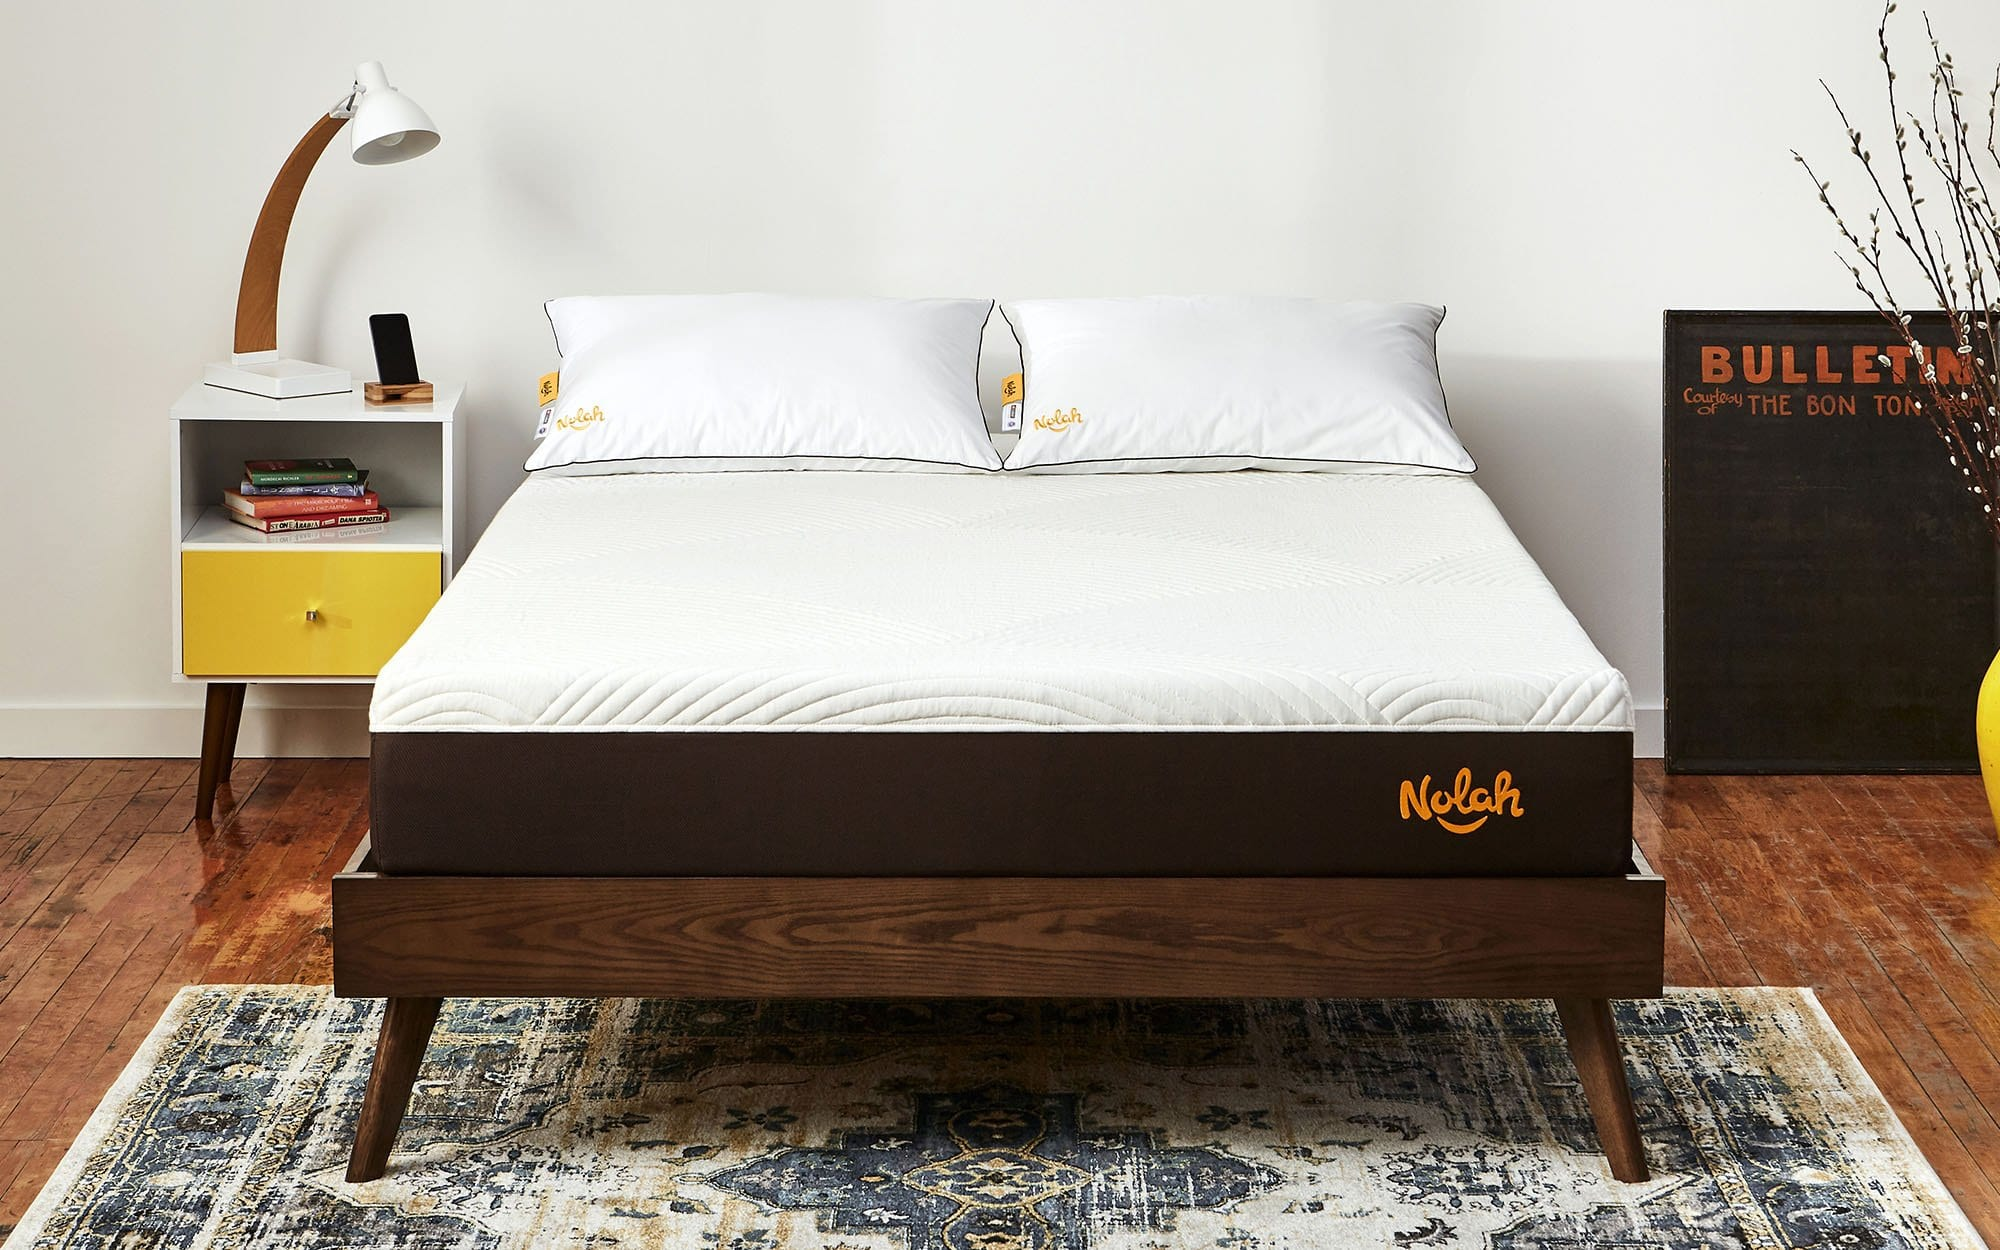 Nolah queen mattress